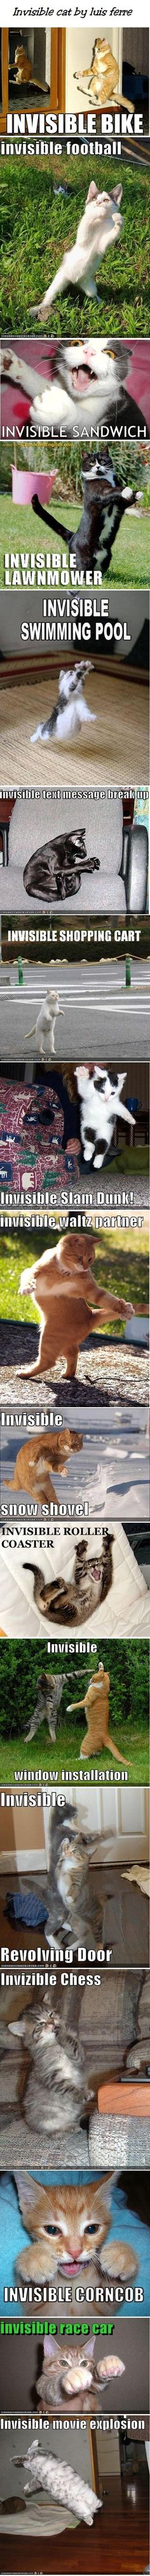 Invisible cat - These are awesome.